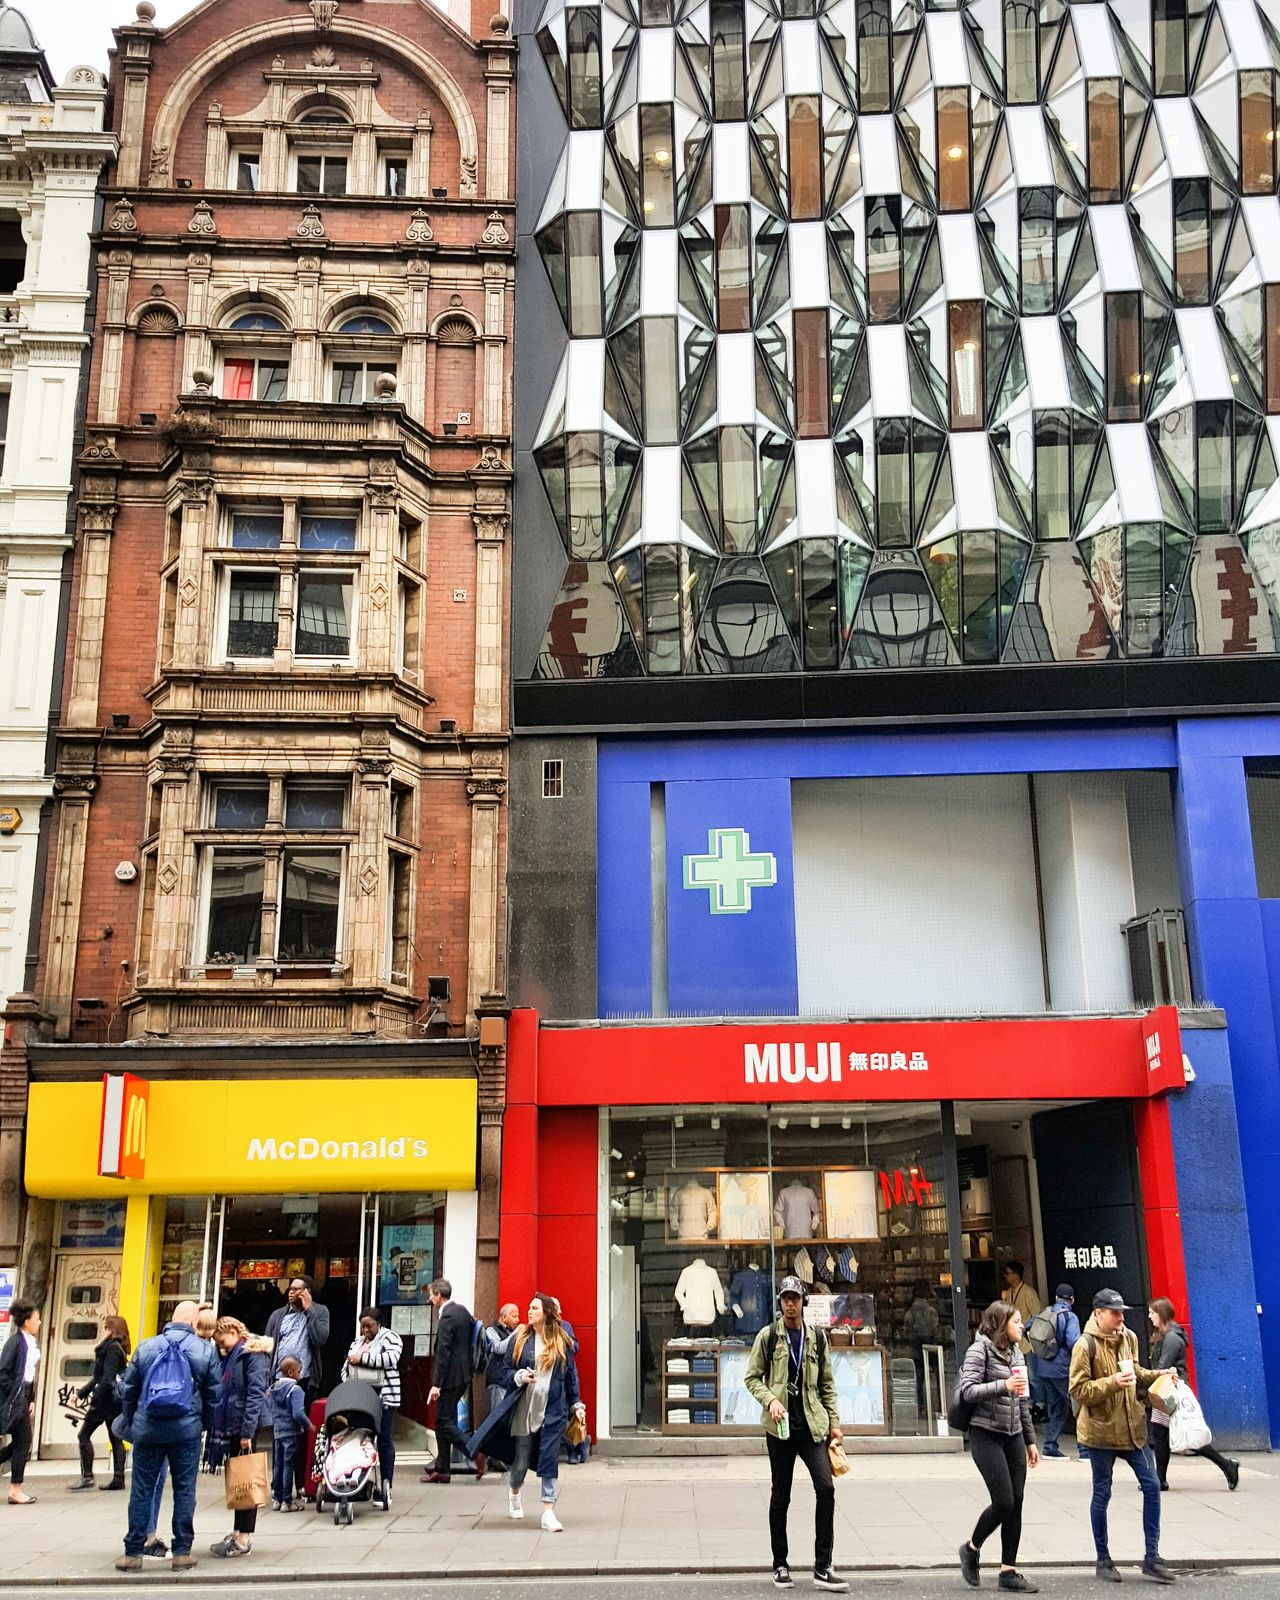 Building Exterior Architecture Men People Built Structure Outdoors Adult City Day Adults Only London McDonald's Mcd Mcdonalds Architecture History Old-fashioned Lifestyles Muji